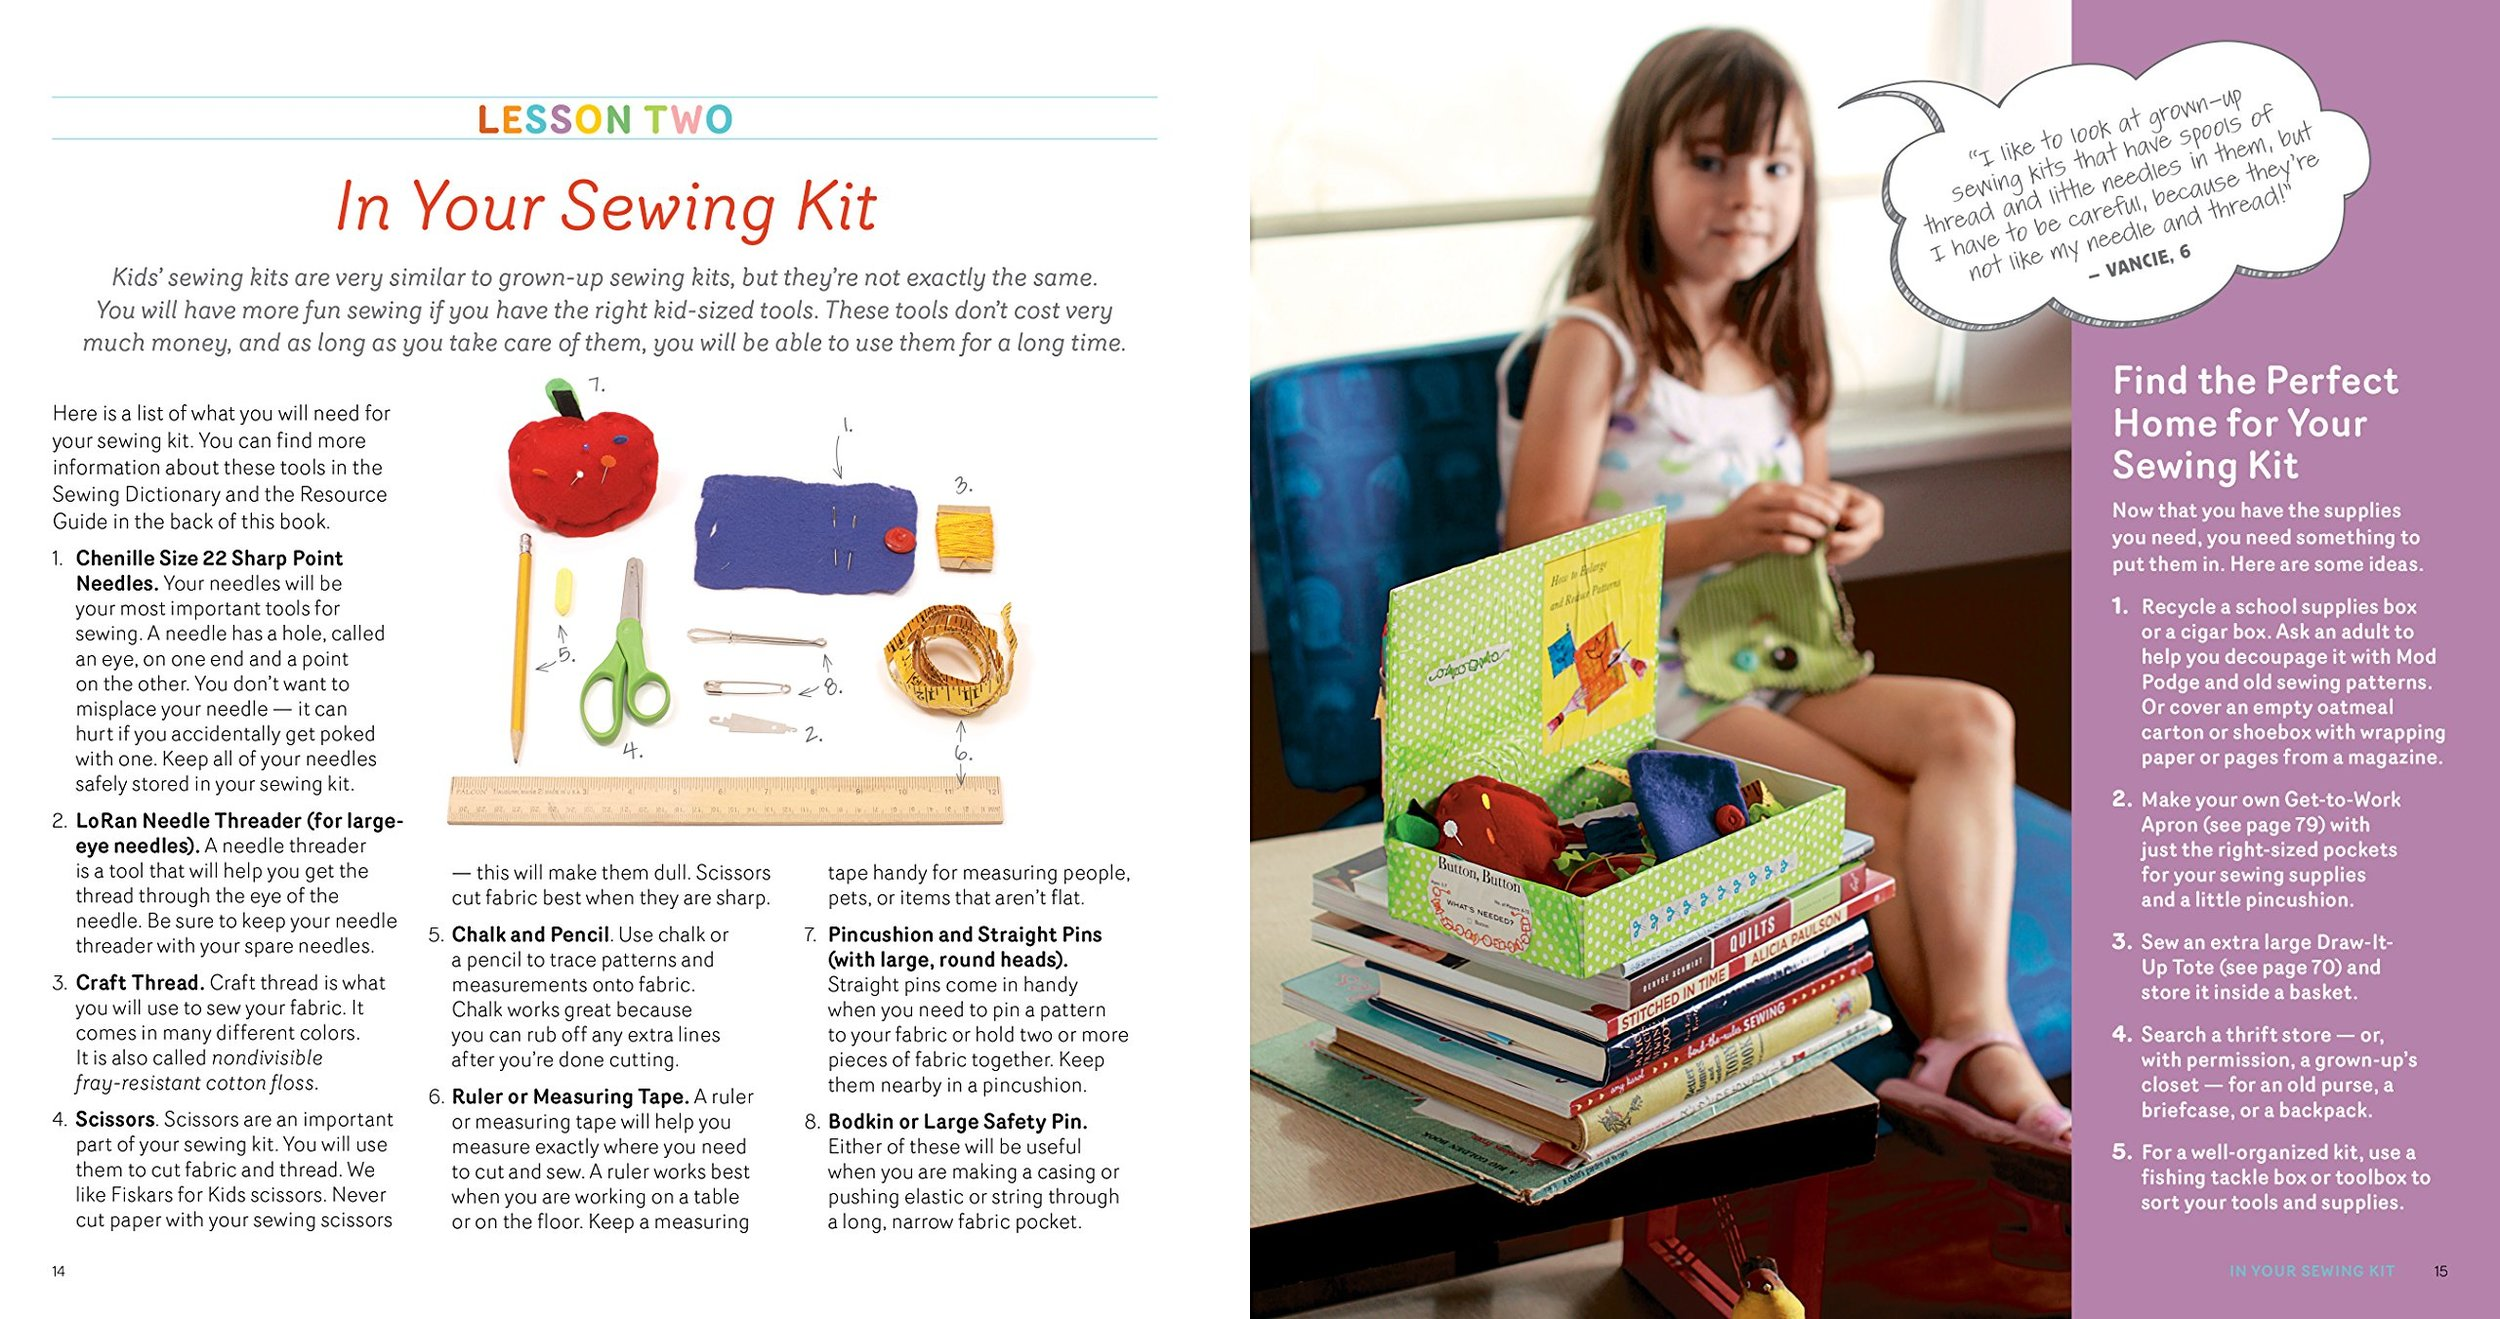 """Written by a kindergarten teacher and a journalist who have taught many children to sew, this large-format book offers appealing projects illustrated with color photos of step-by-step directions as well as kids engaged in sewing and showing off work. Best of all, this practical, attractive sewing book features finished projects that look like they were actually made by children."" Booklist"